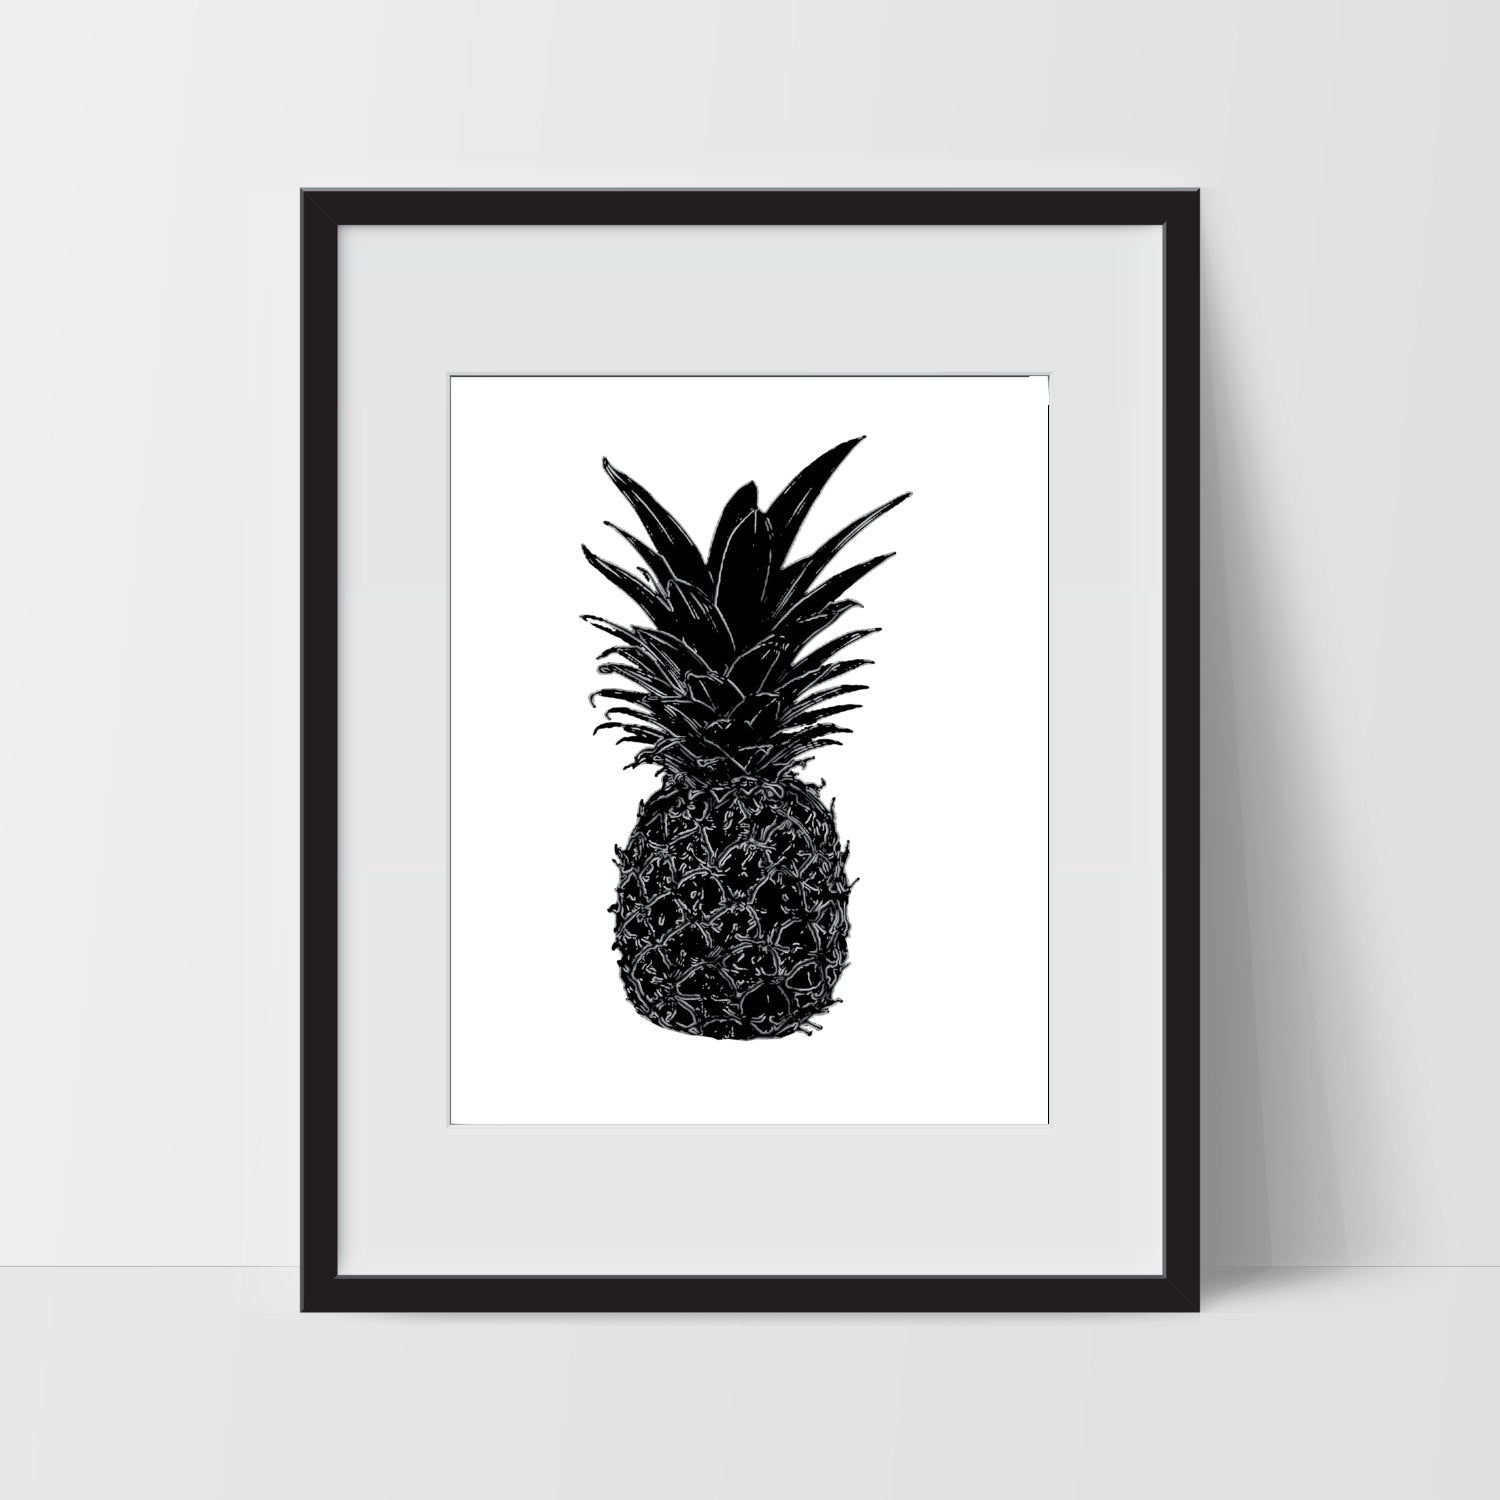 Pineapple Printable, Wall Art, Artwork, Home Decor, Modern Print, Print Art, Abstract Art, Black White, Decorations, Digital Print